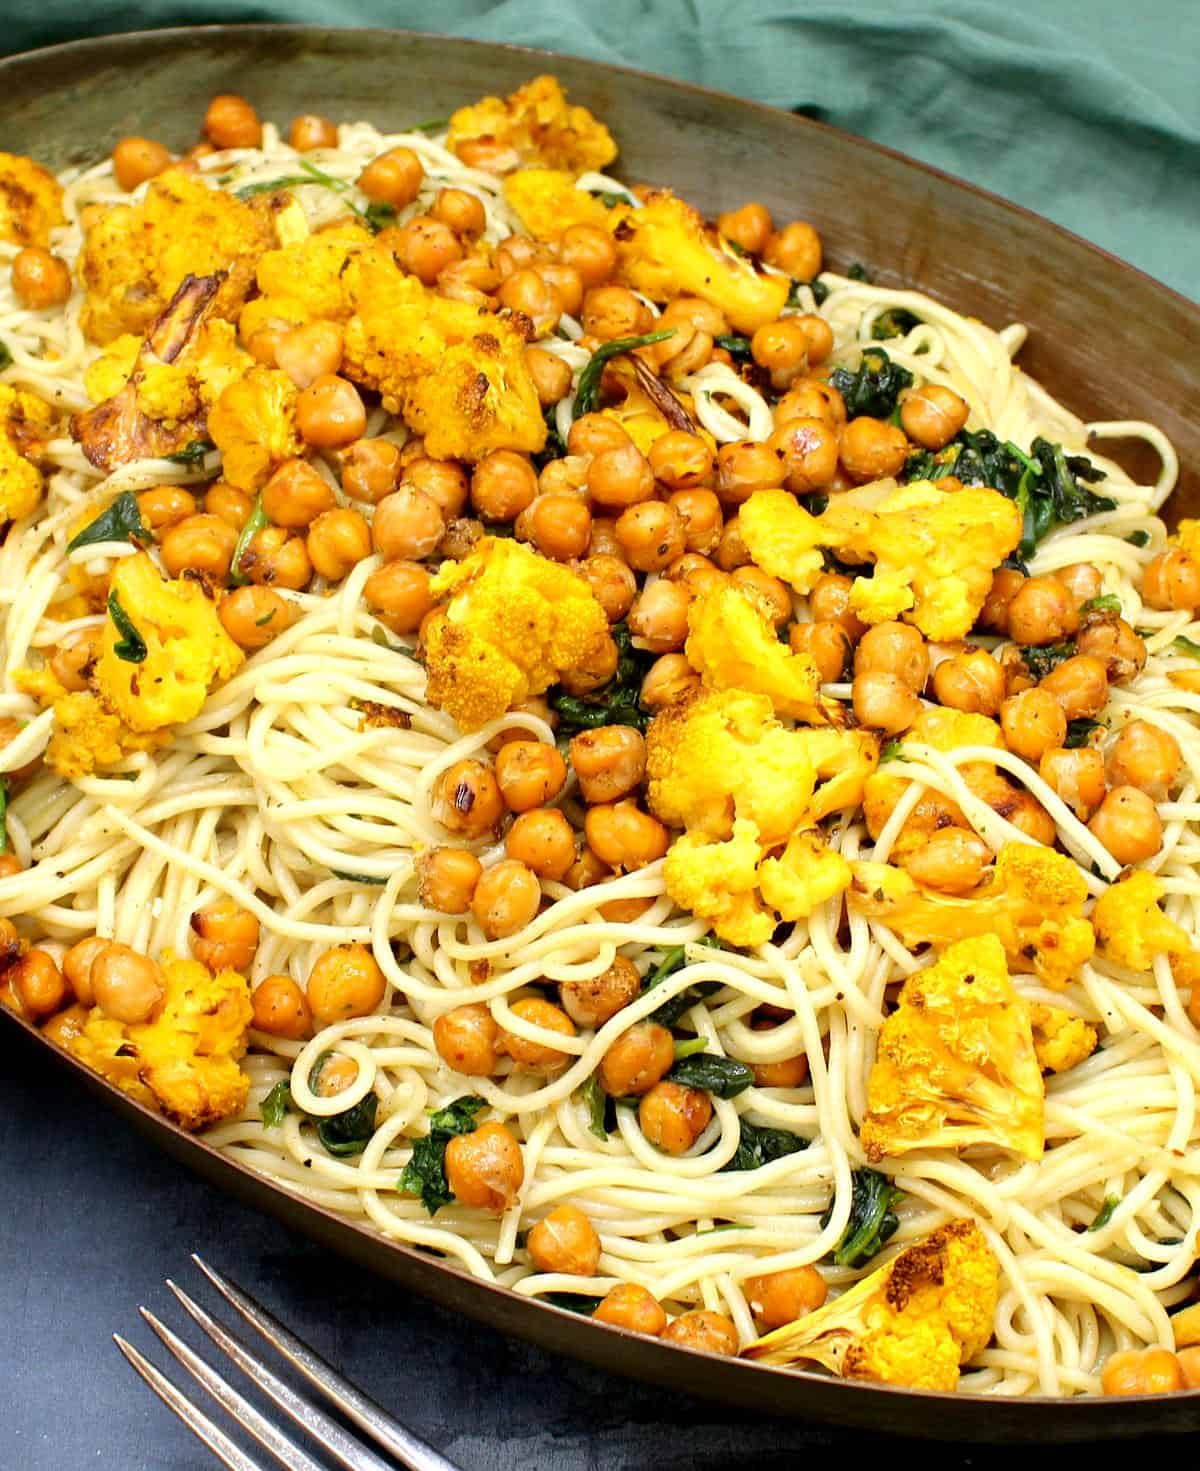 Front closeup shot of a pan with pasta tossed with roasted chickpeas, cauliflower and spinach with garlic, lemon and spices and herbs.